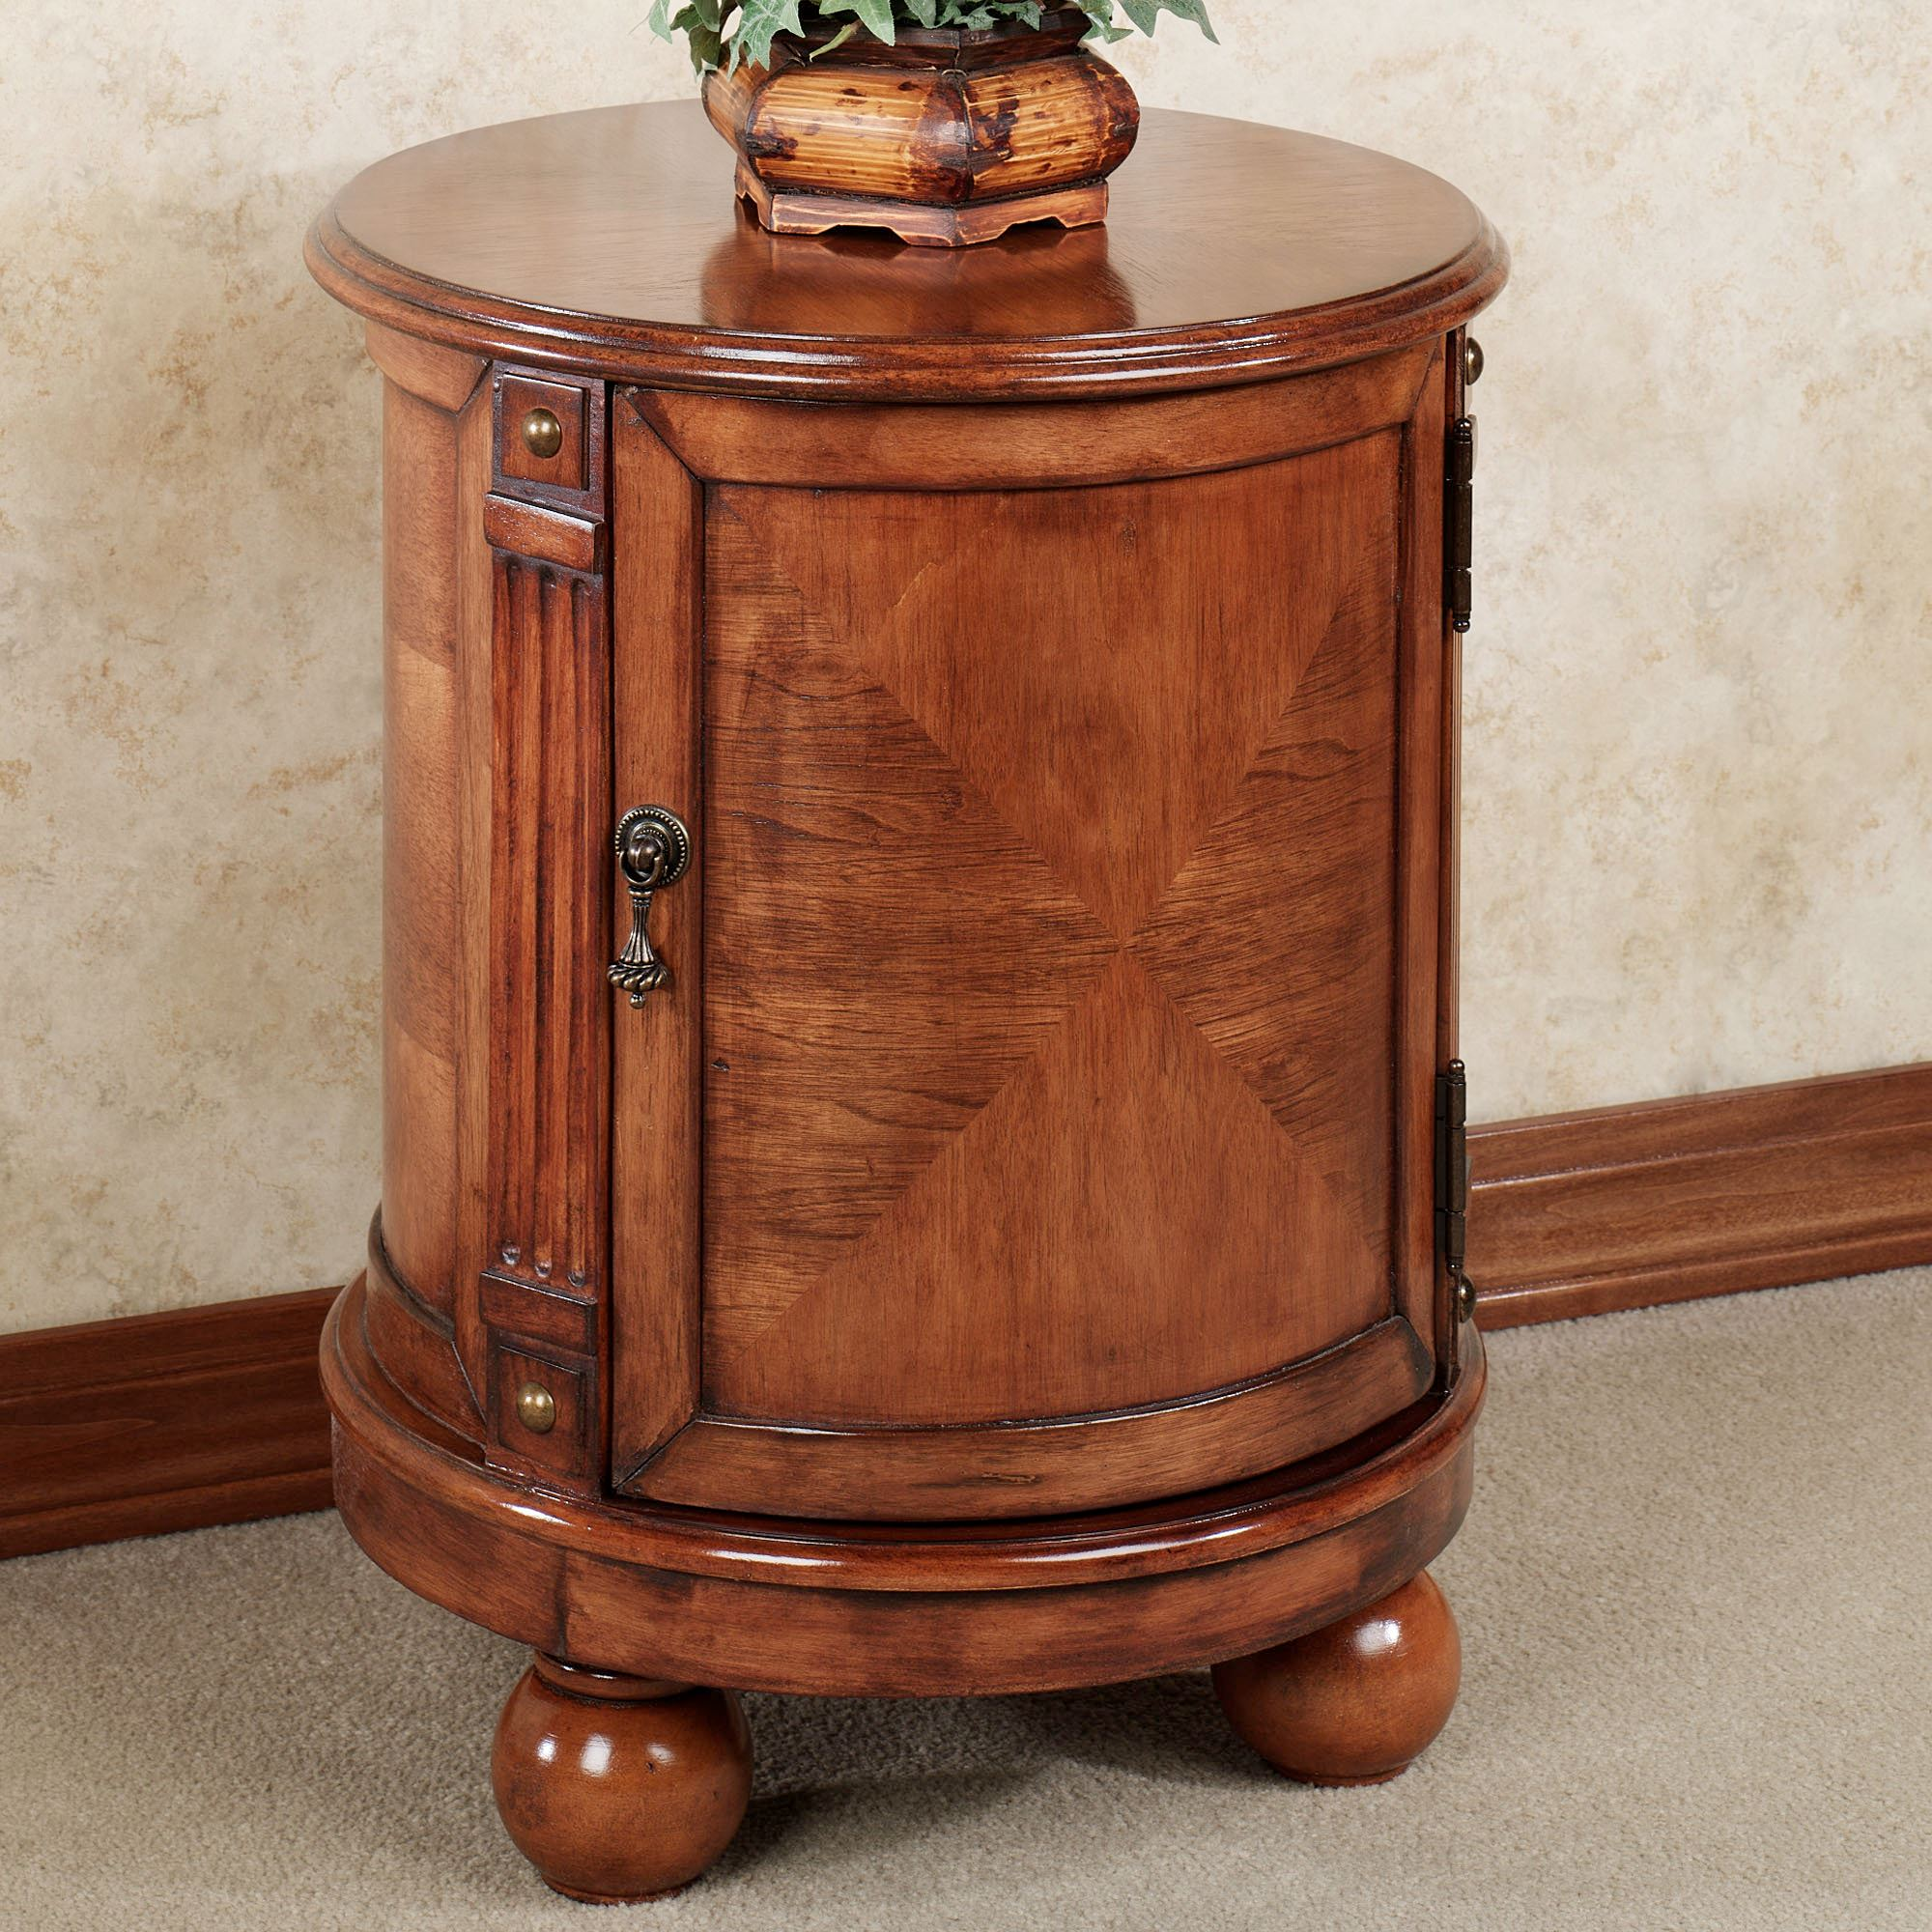 eldred round chairside accent storage chest table with drawer touch zoom square dining hampton bay wicker patio furniture short nightstand target desk free quilted placemat